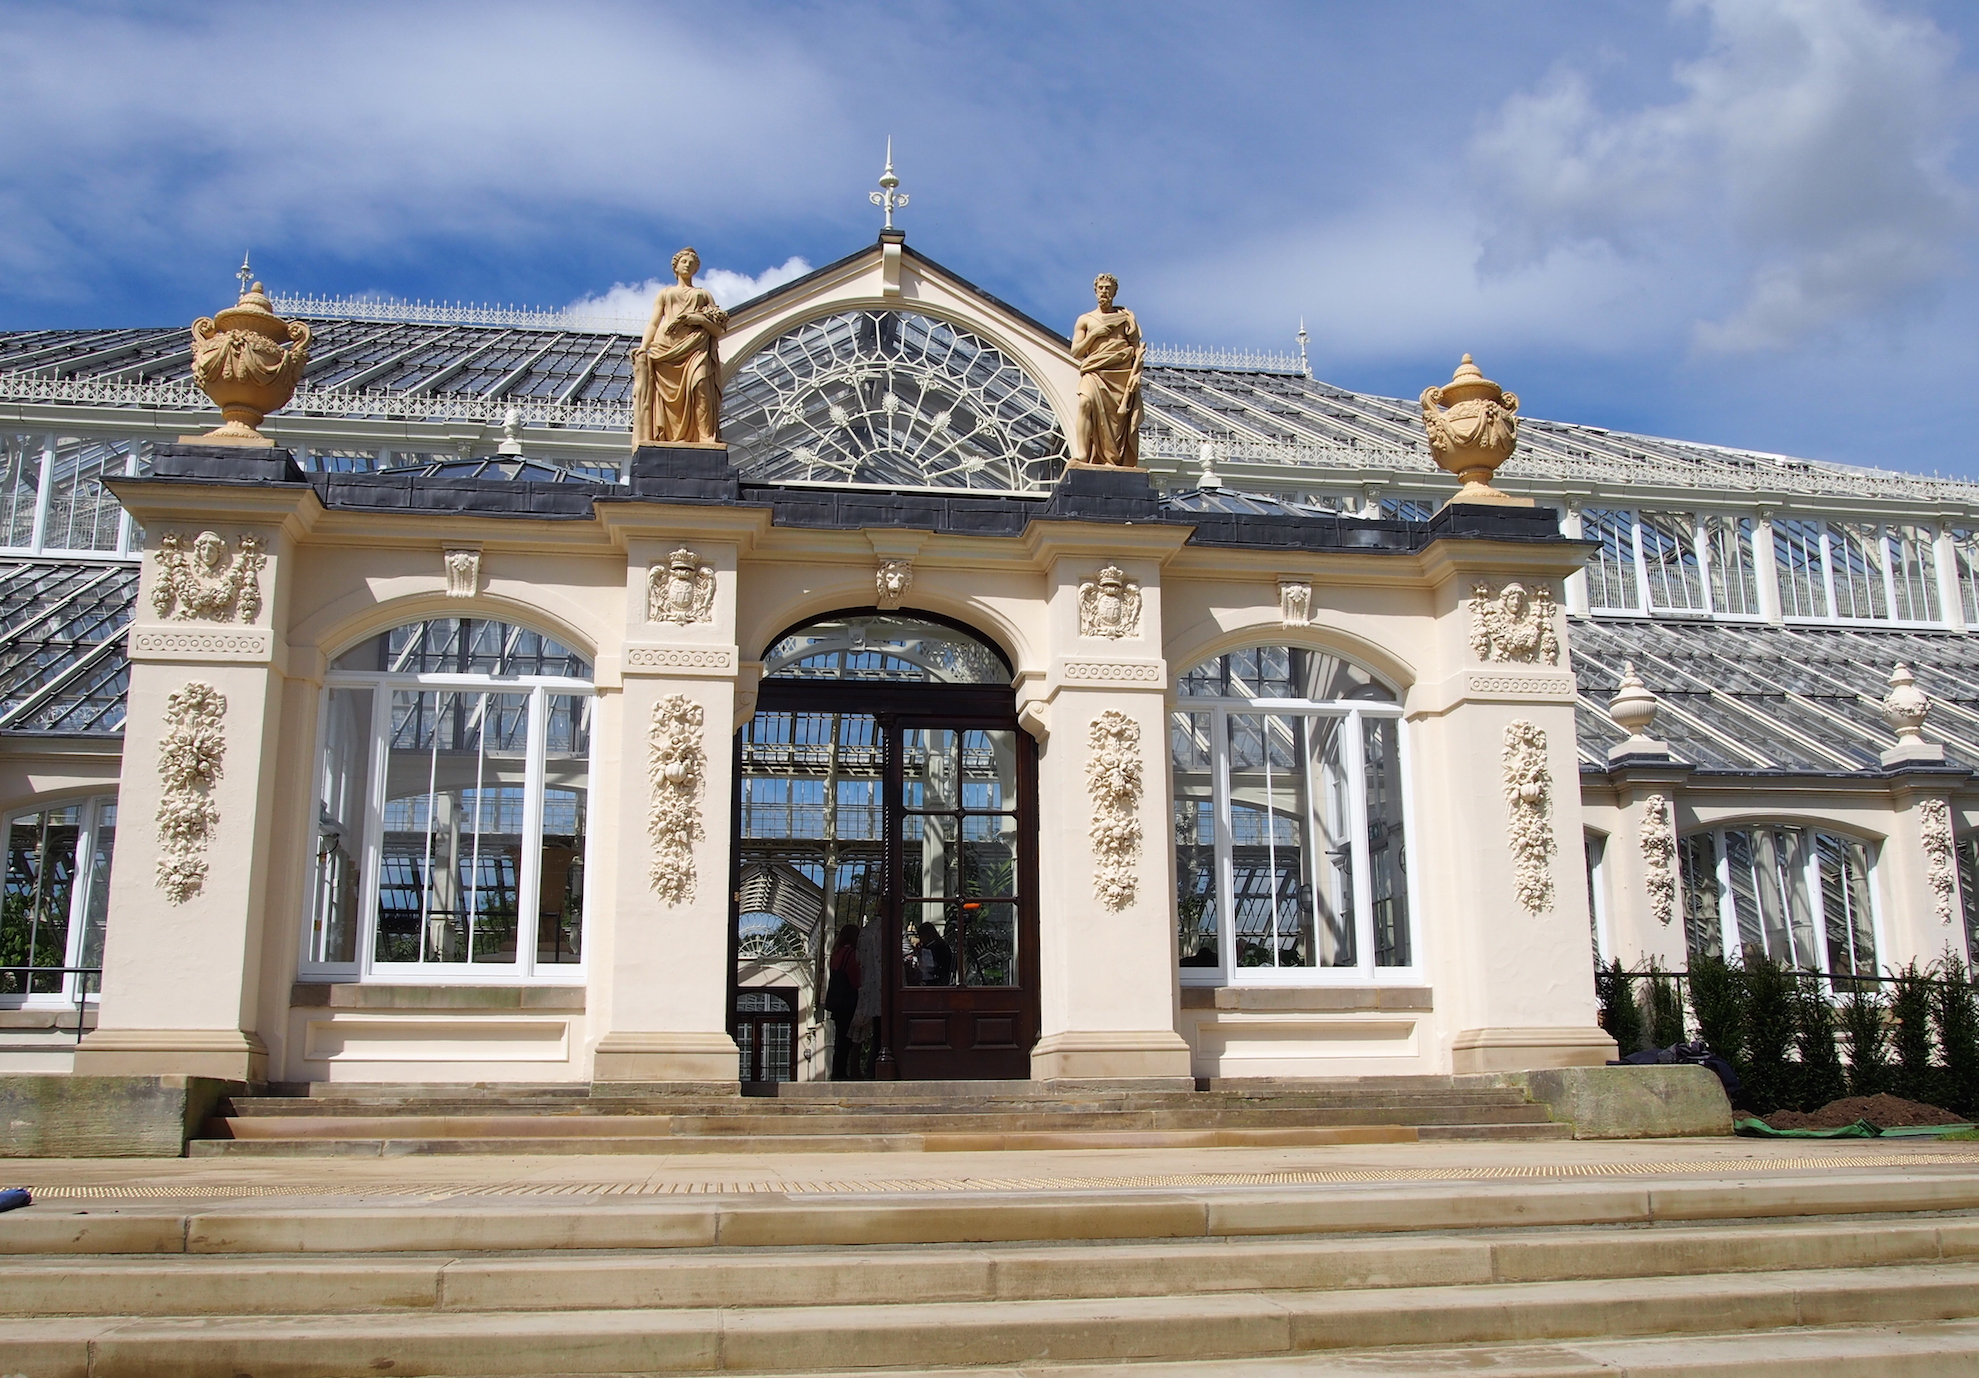 Gardening News: Restoring the Temperate House at Kew